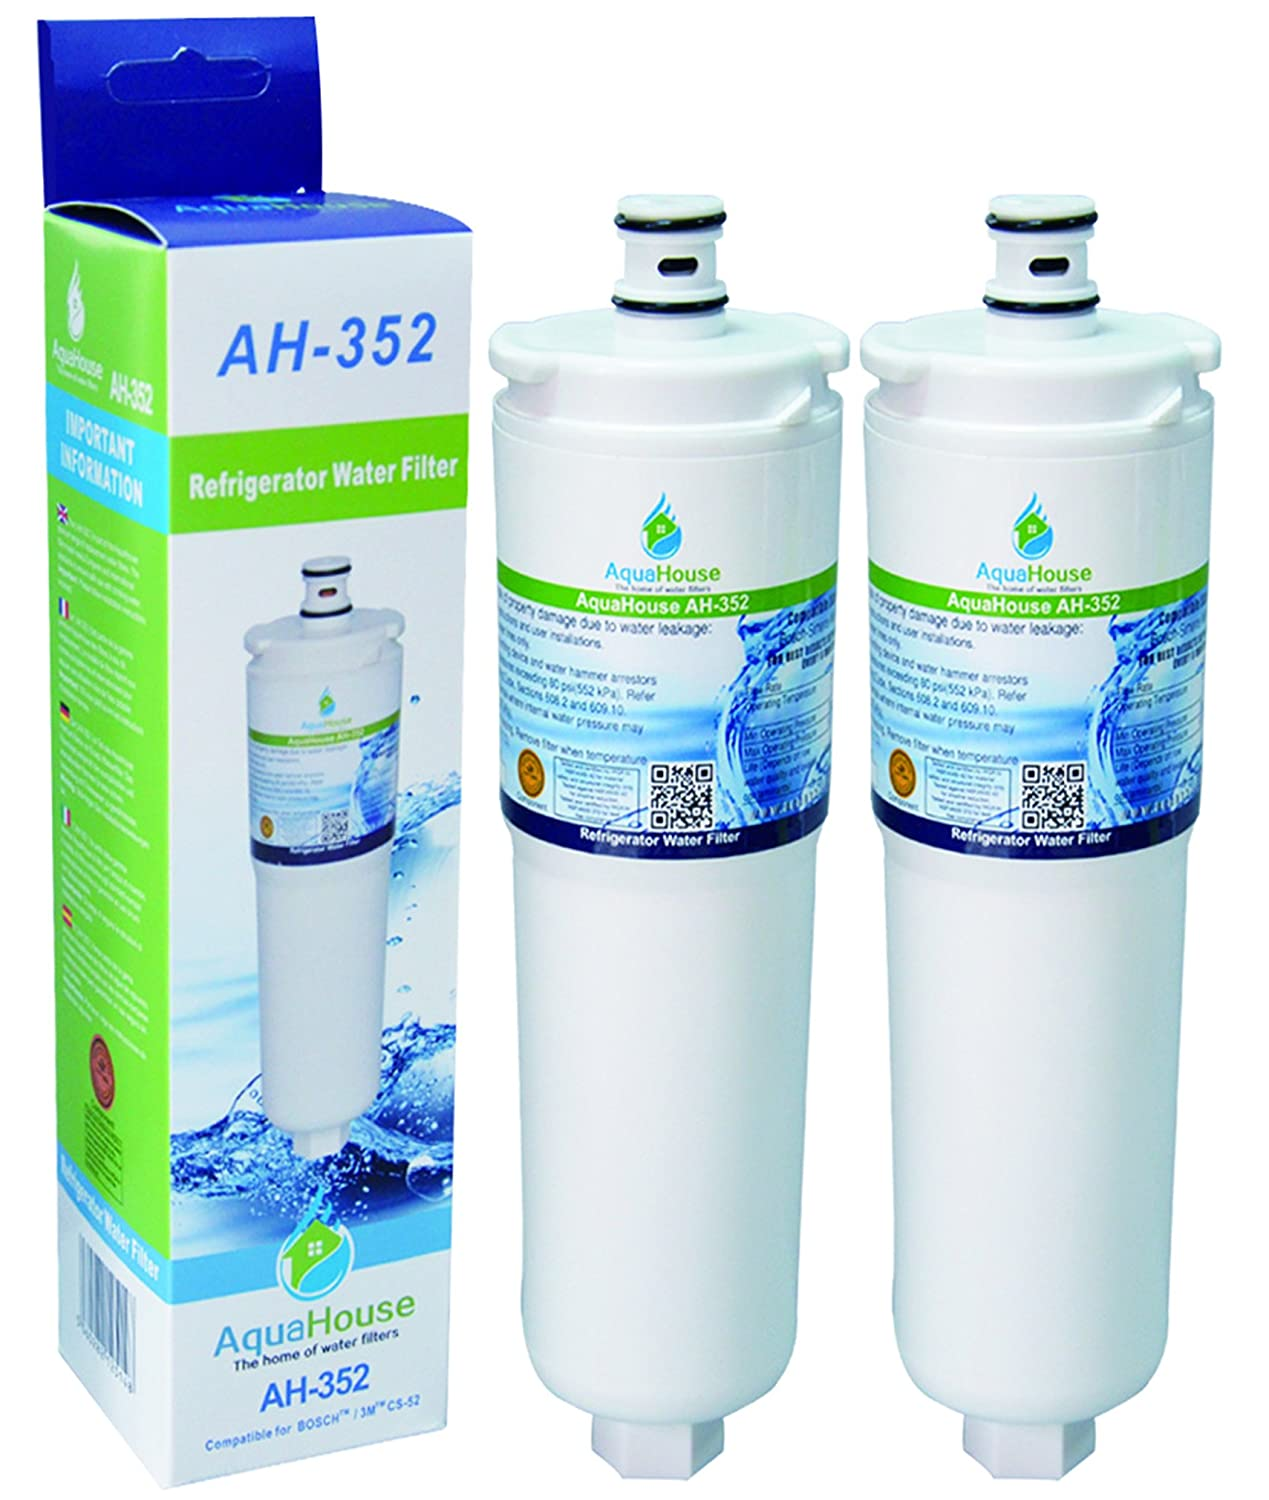 2x AH-352 Compatible for CS-52 water filter fits Bosch Neff Siemens fridge filter CS-452, CS-51, 640565, 5586605 AquaHouse